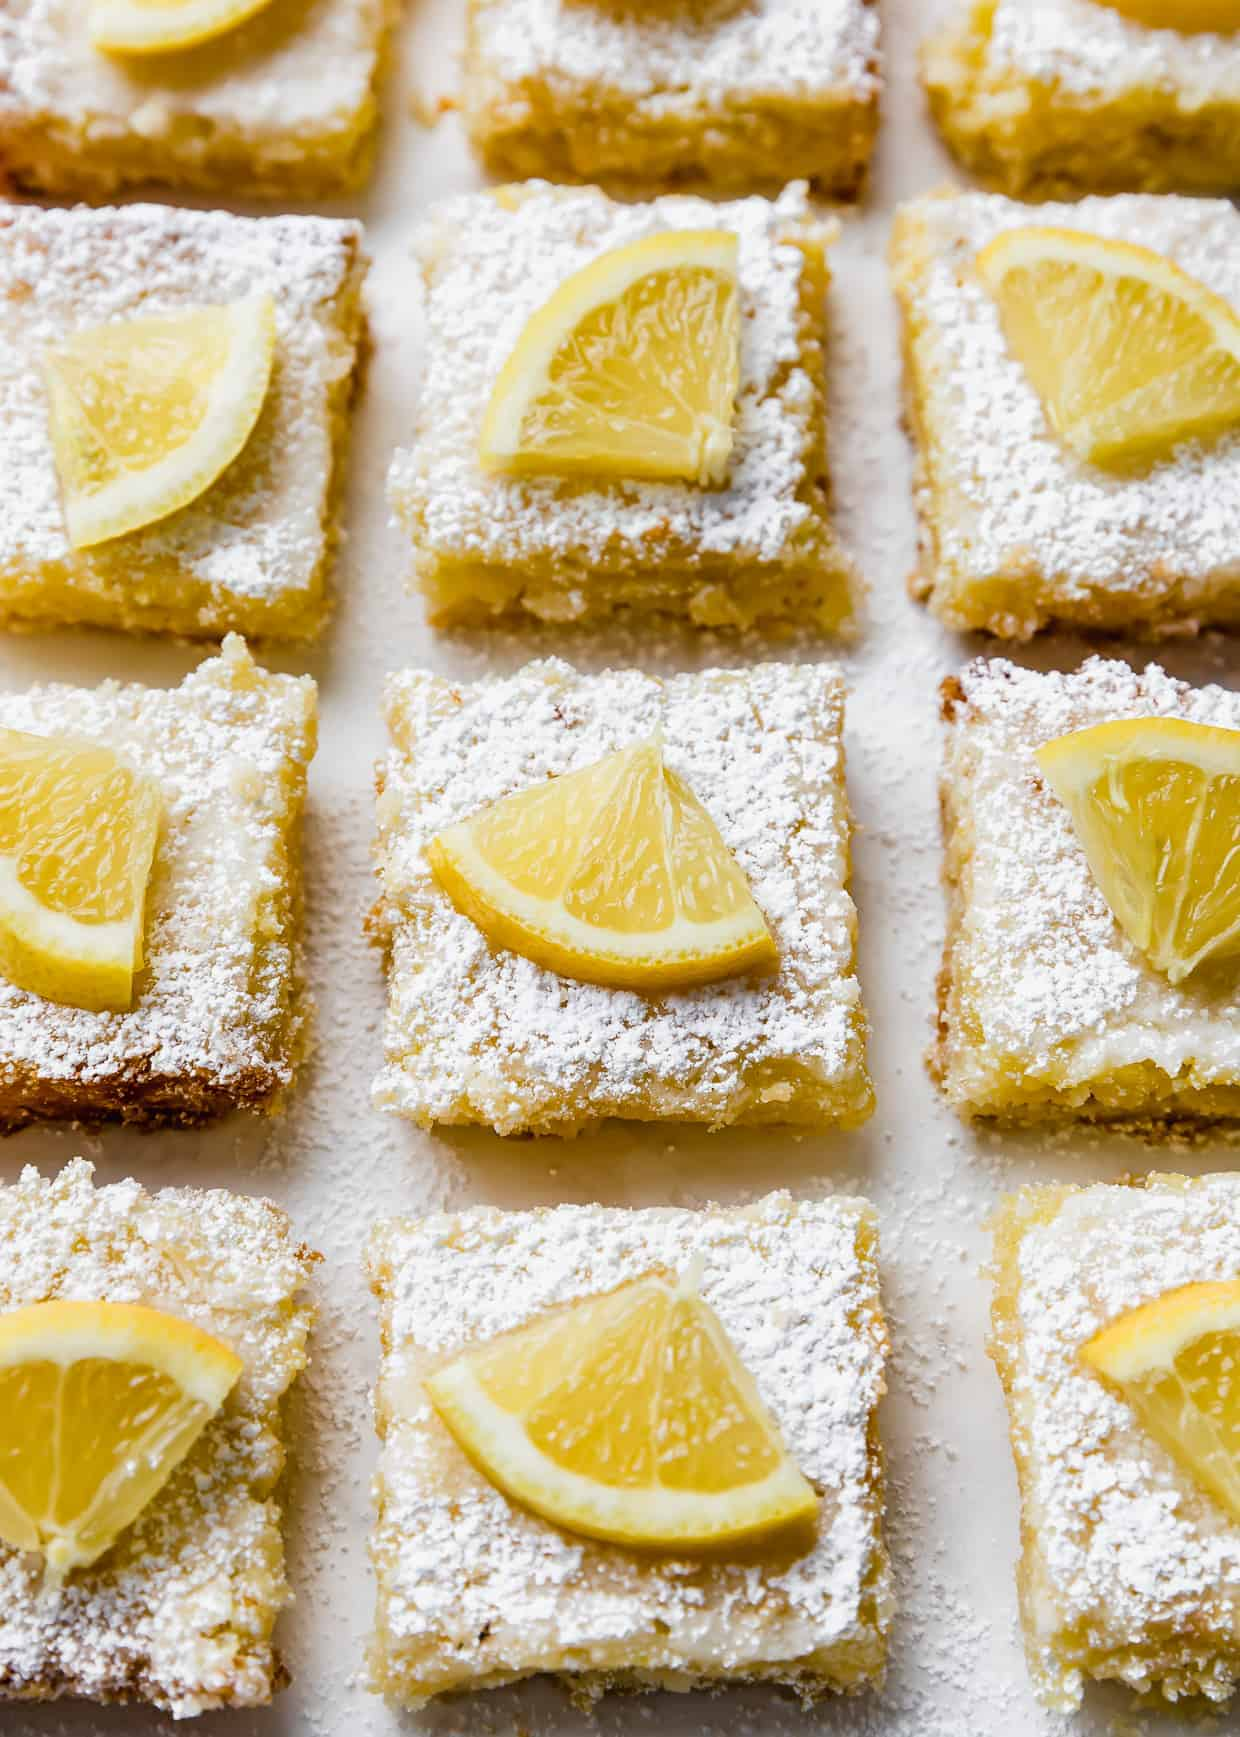 Lemon bars topped with powdered sugar and a wedge of fresh lemon.